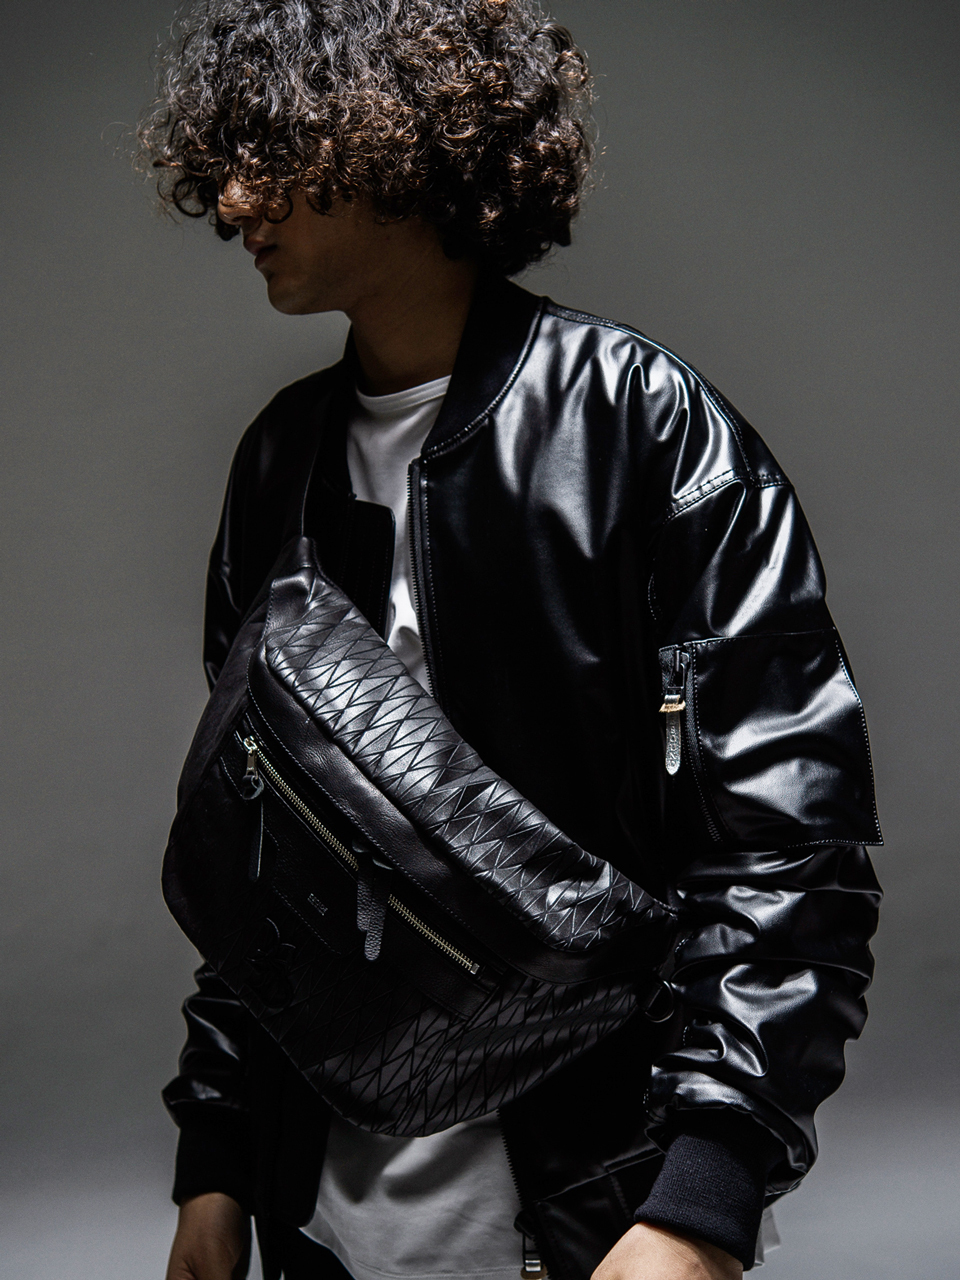 RESOUND CLOTHING (リサウンドクロージング) DECADE COLLABO BODY BAG / BLACK RC21-BAG-002RD-1